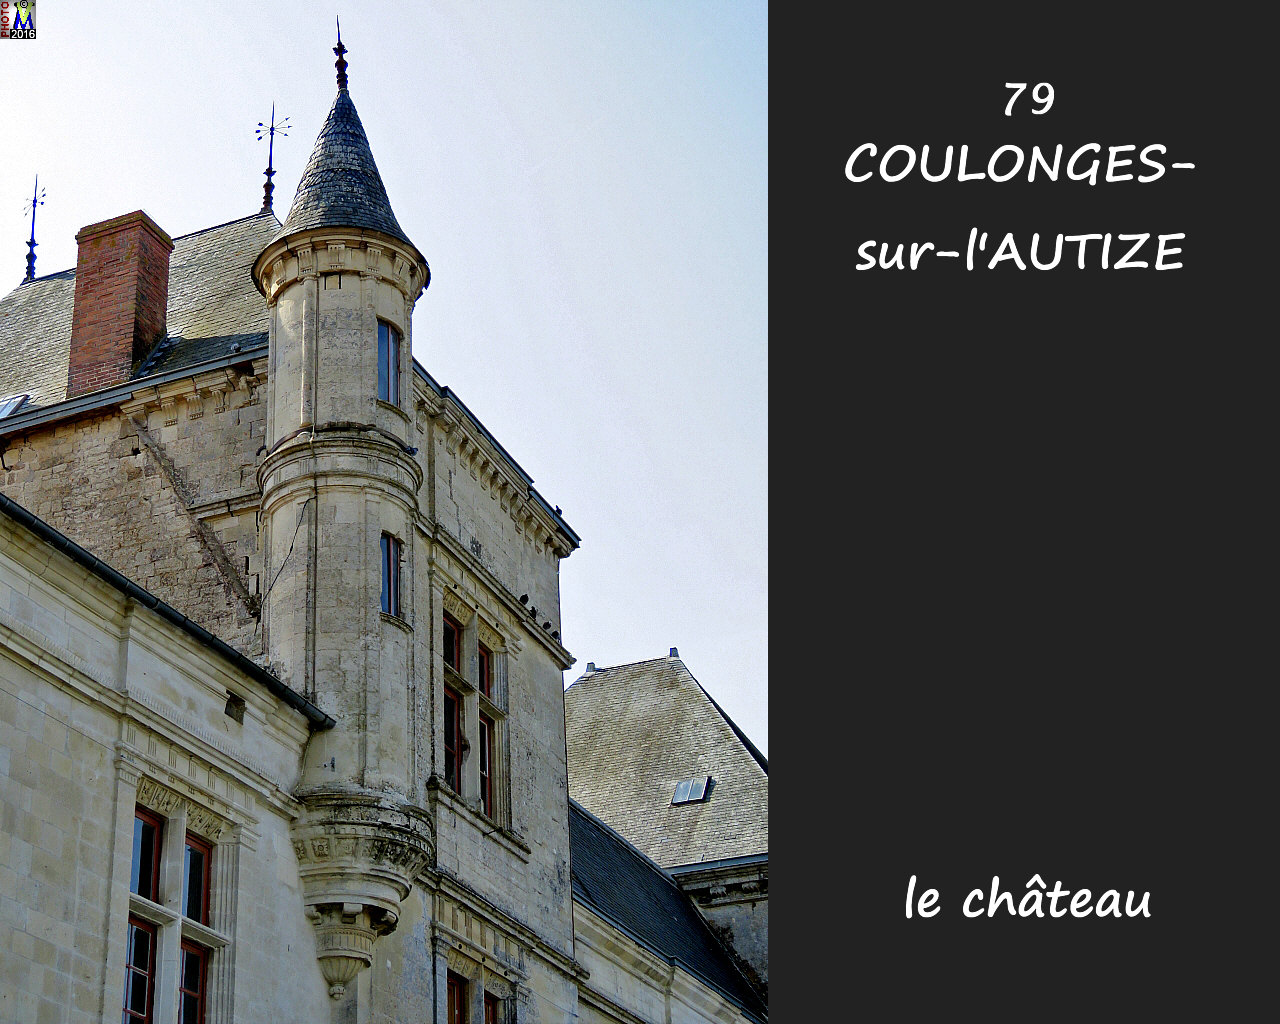 79COULONGES-AUTIZE_chateau_1012.jpg